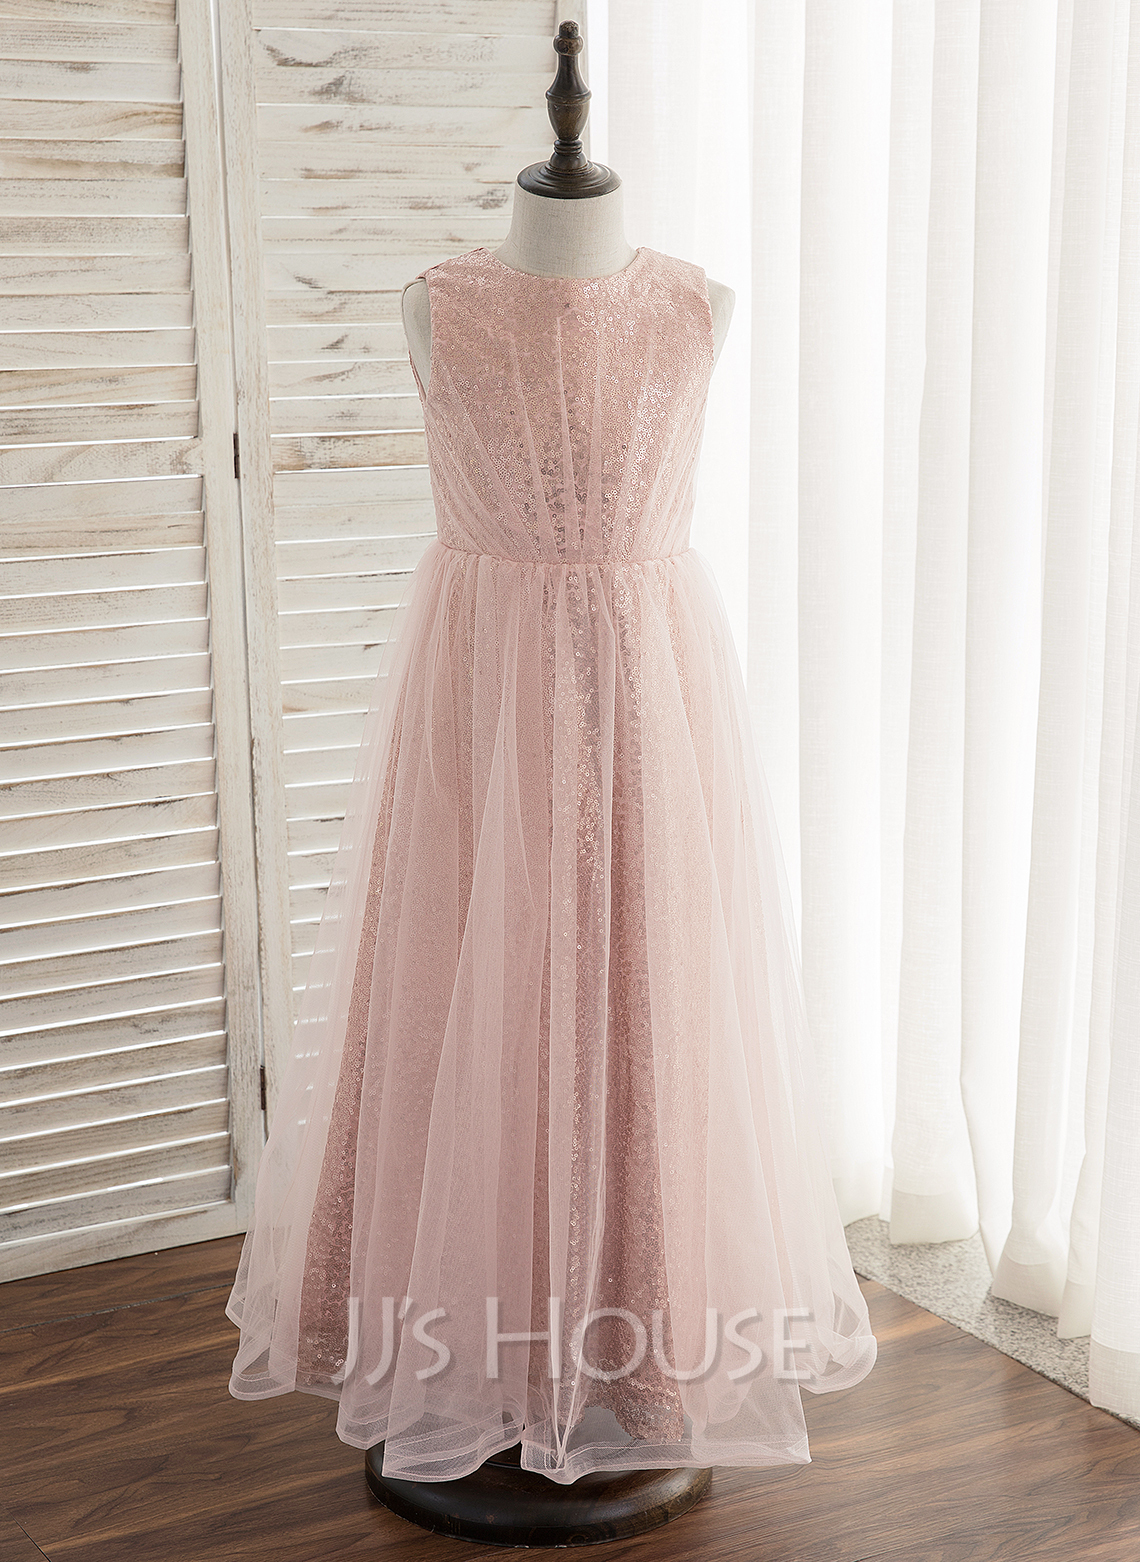 73c4e0cc7f3 A-Line Princess Ankle-length Flower Girl Dress - Tulle Sequined Sleeveless. Loading  zoom